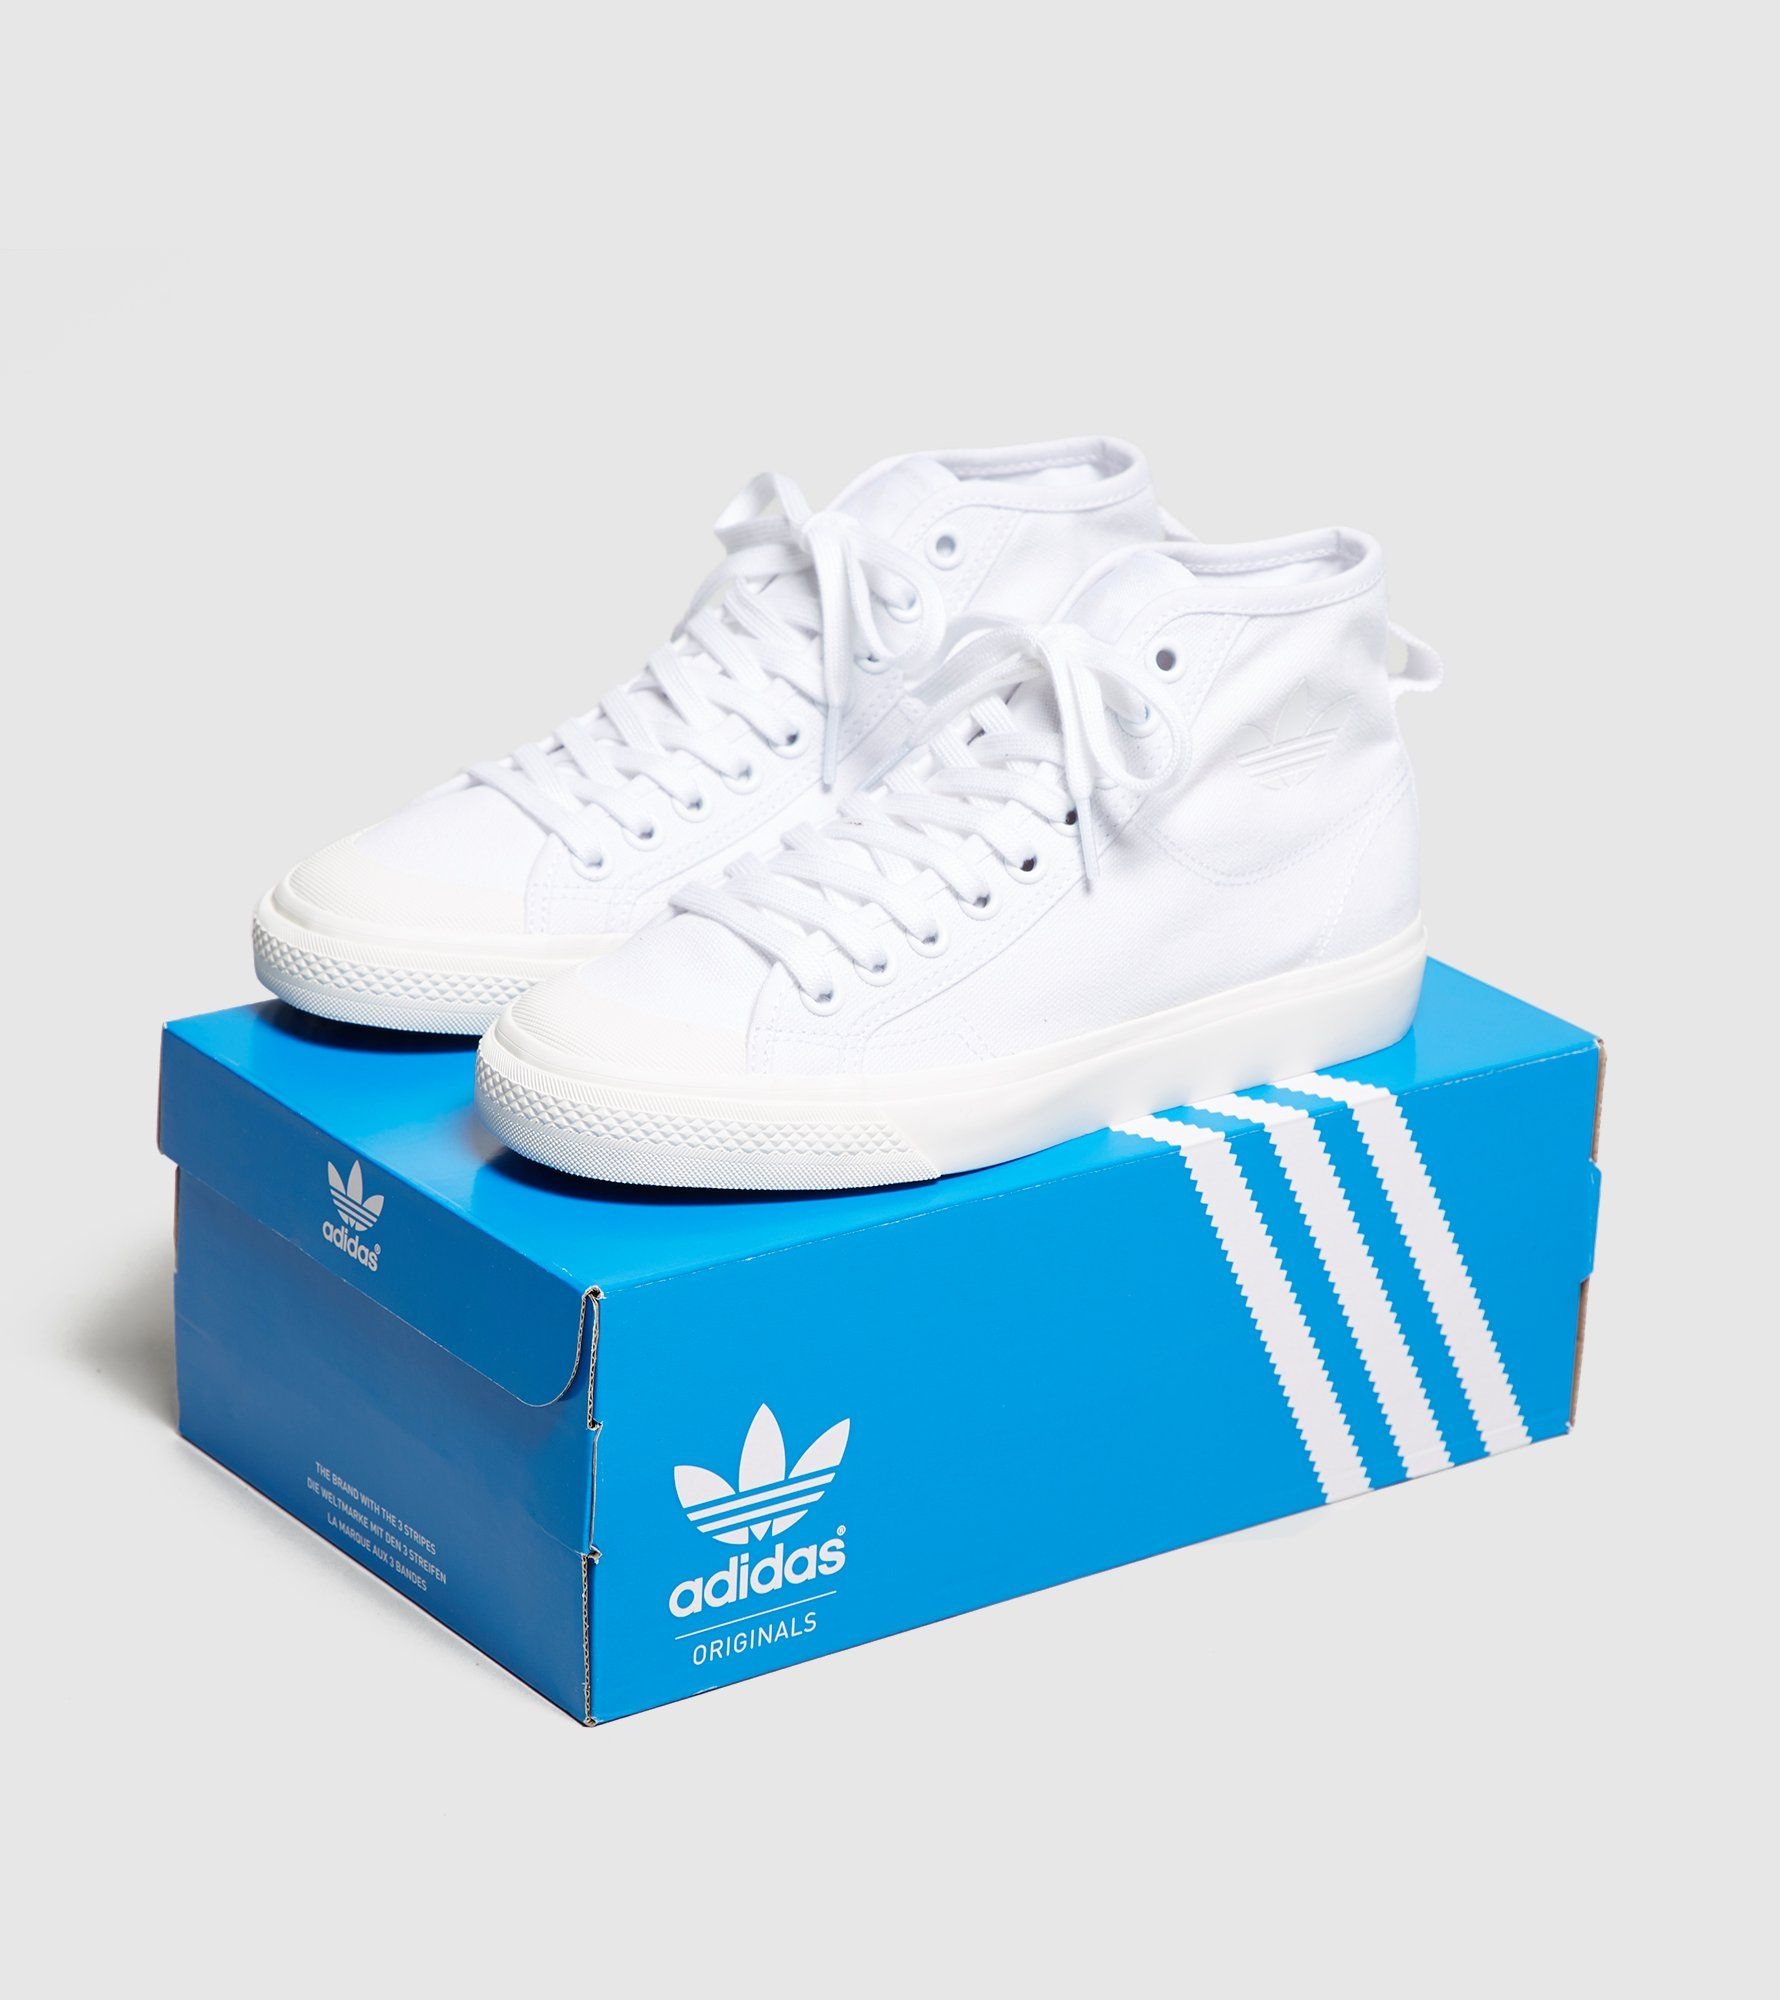 adidas Originals Nizza High Top Women's